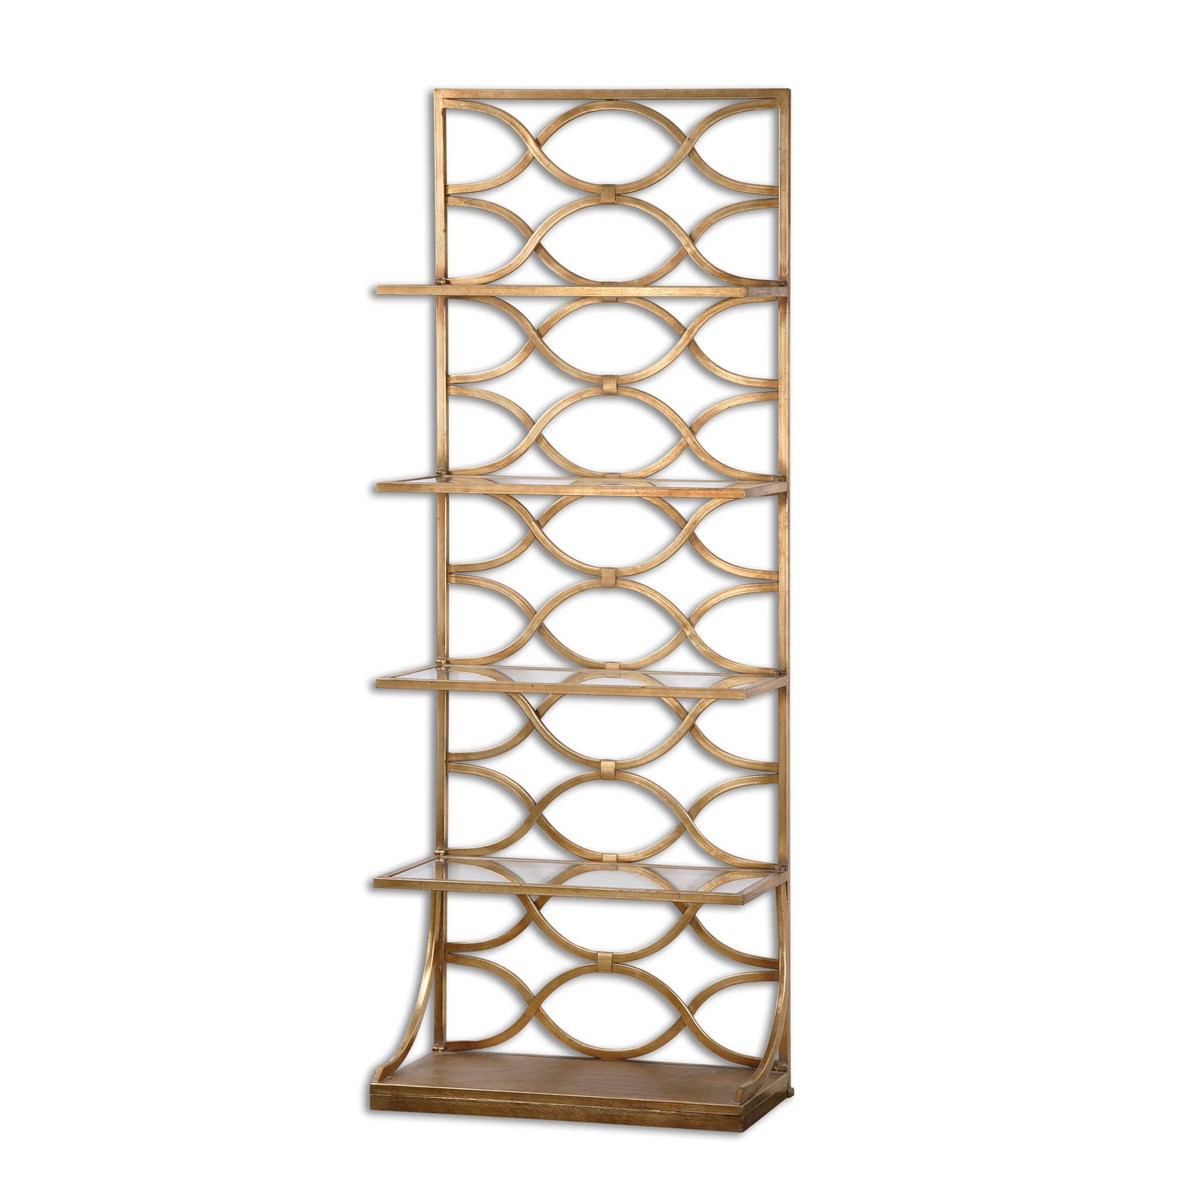 Lashy Etagere santa barbara design center 33113-